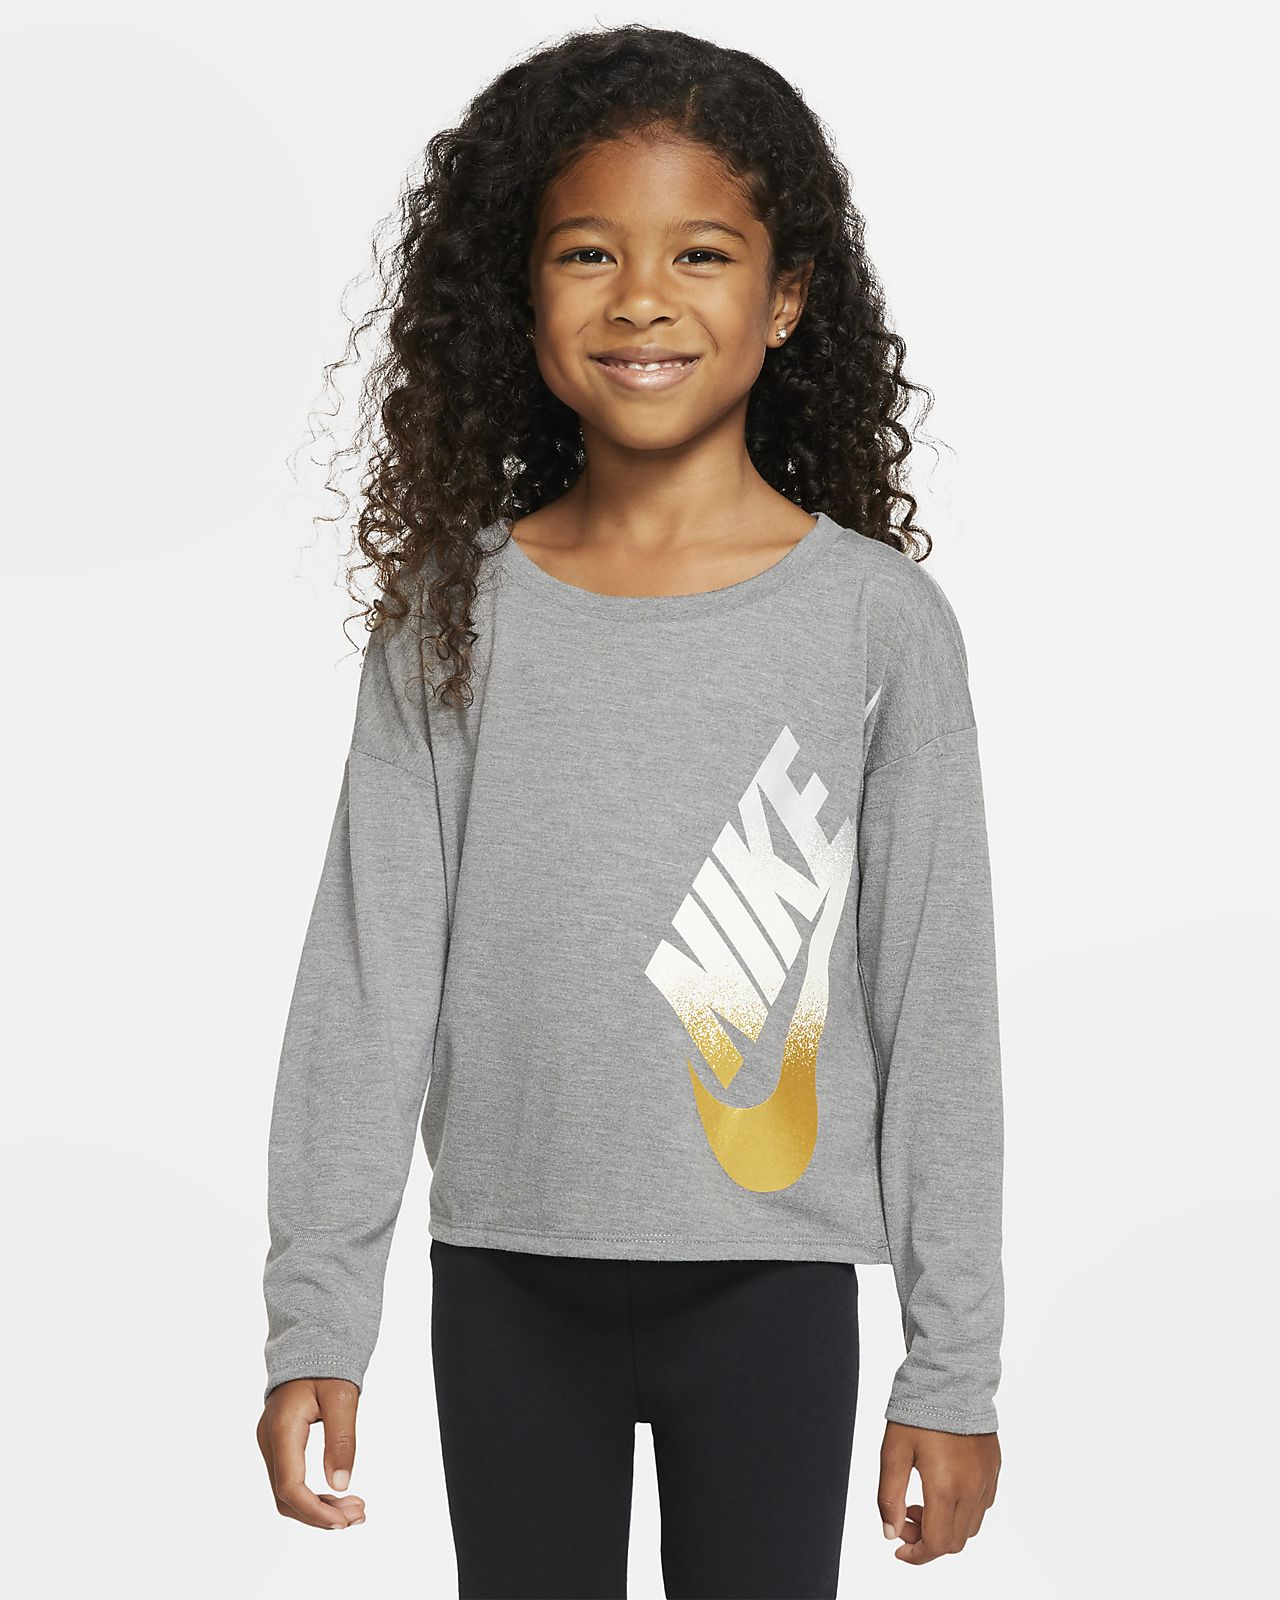 Nike Little Kids' Long-Sleeve Top